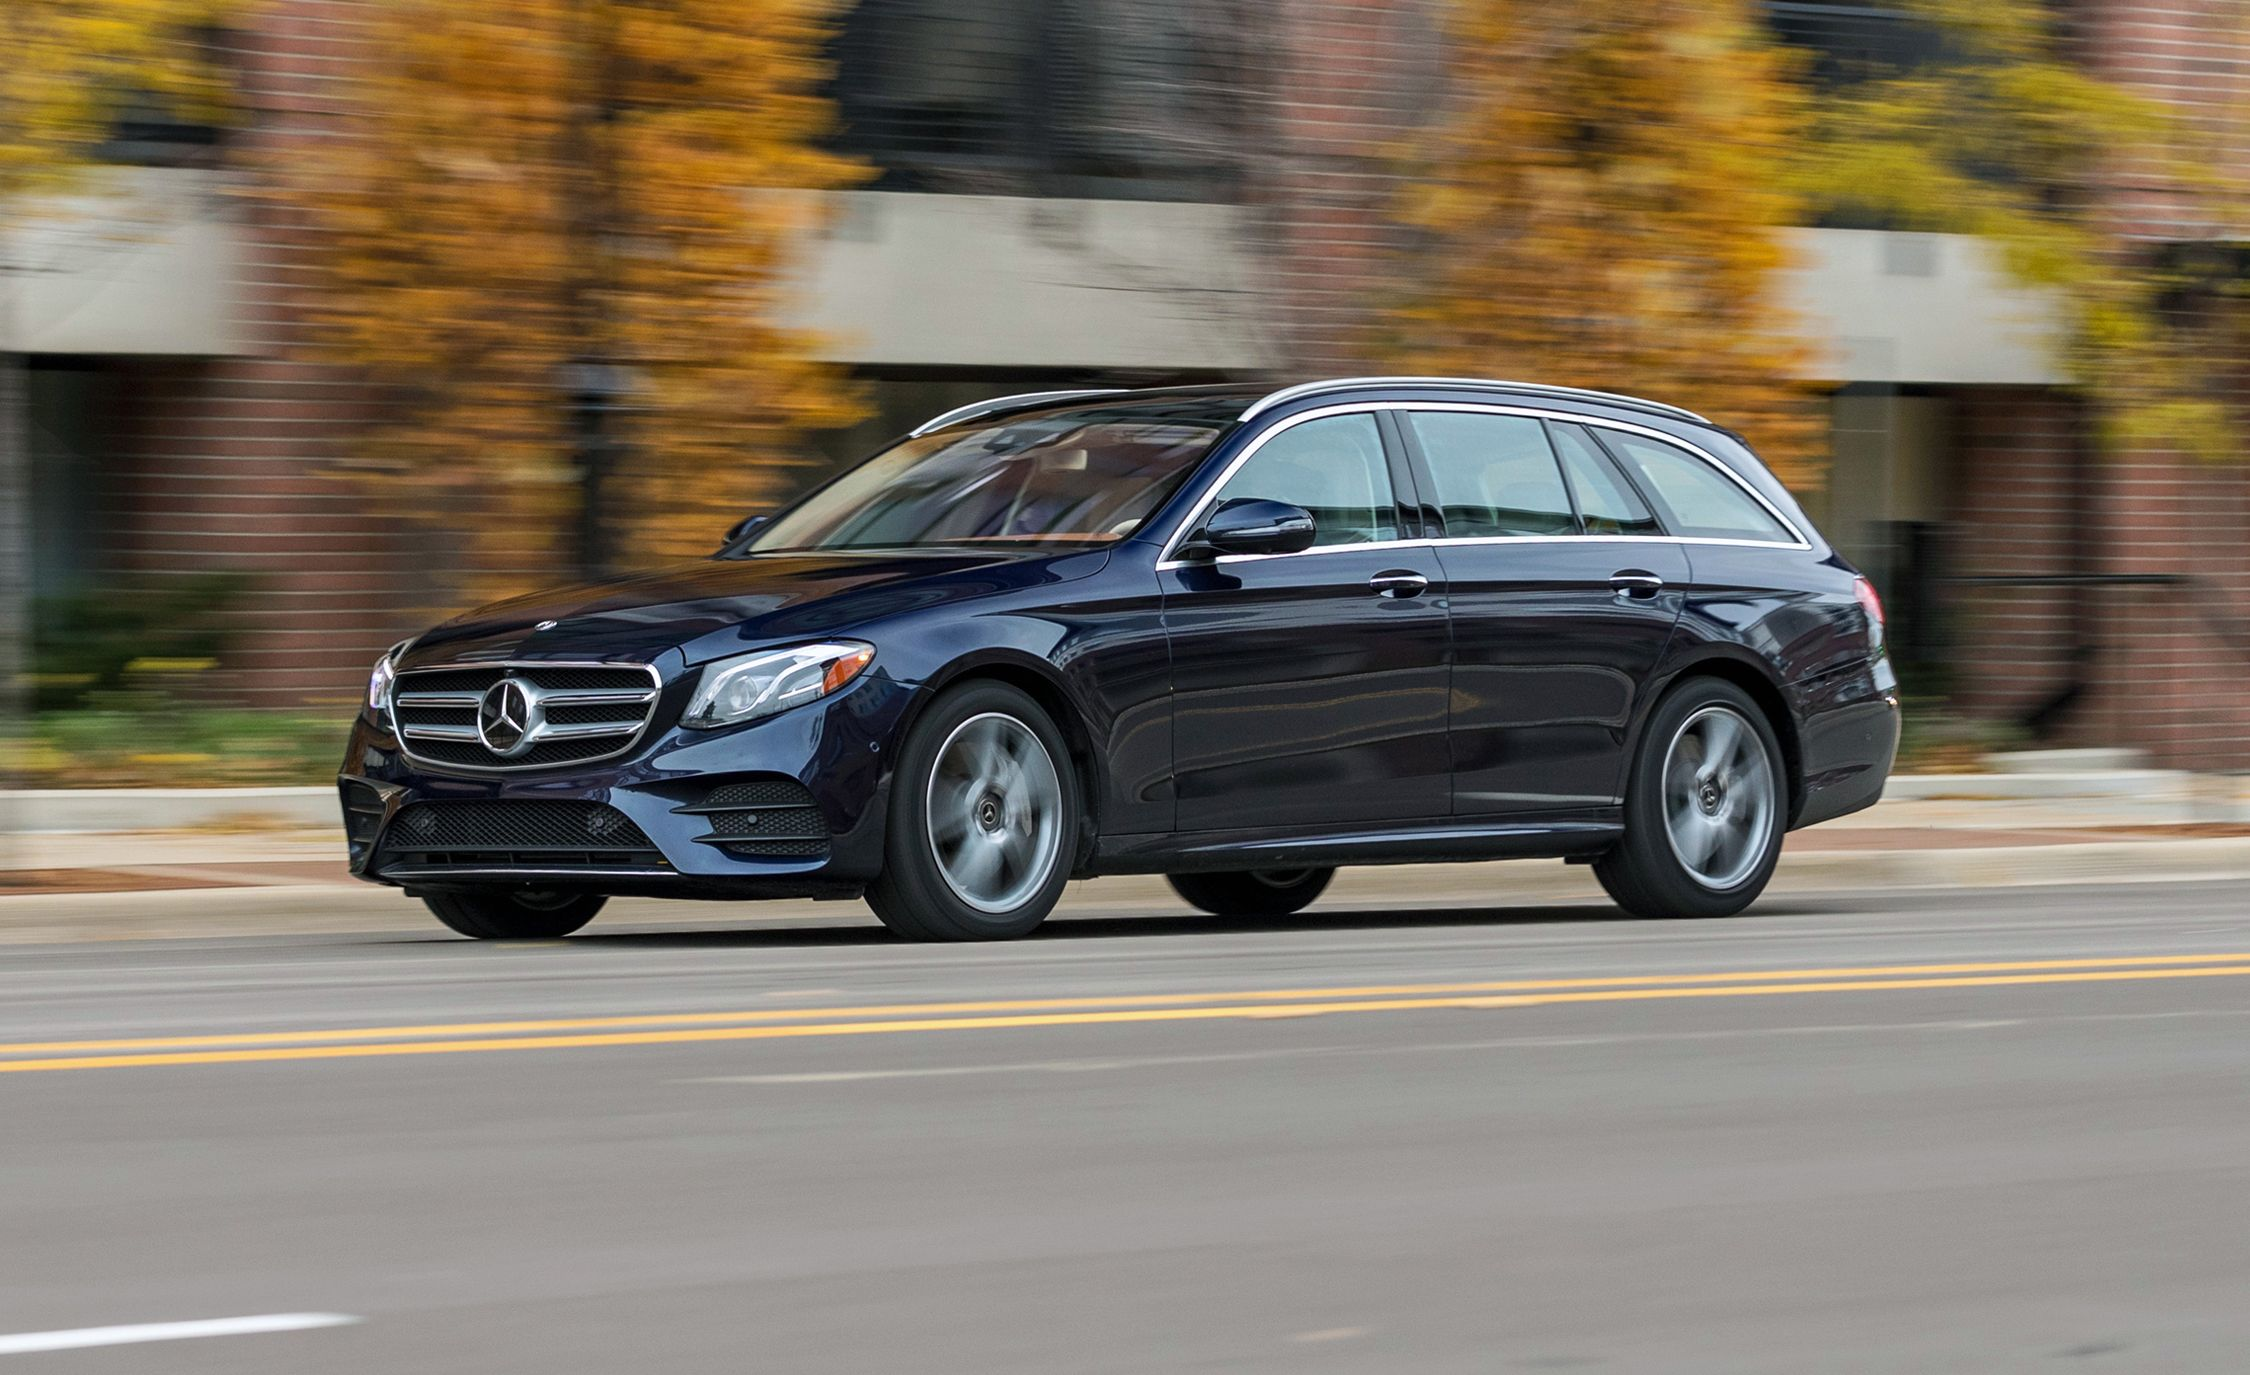 How Reliable Is The 2019 Mercedes Benz E Class Wagon